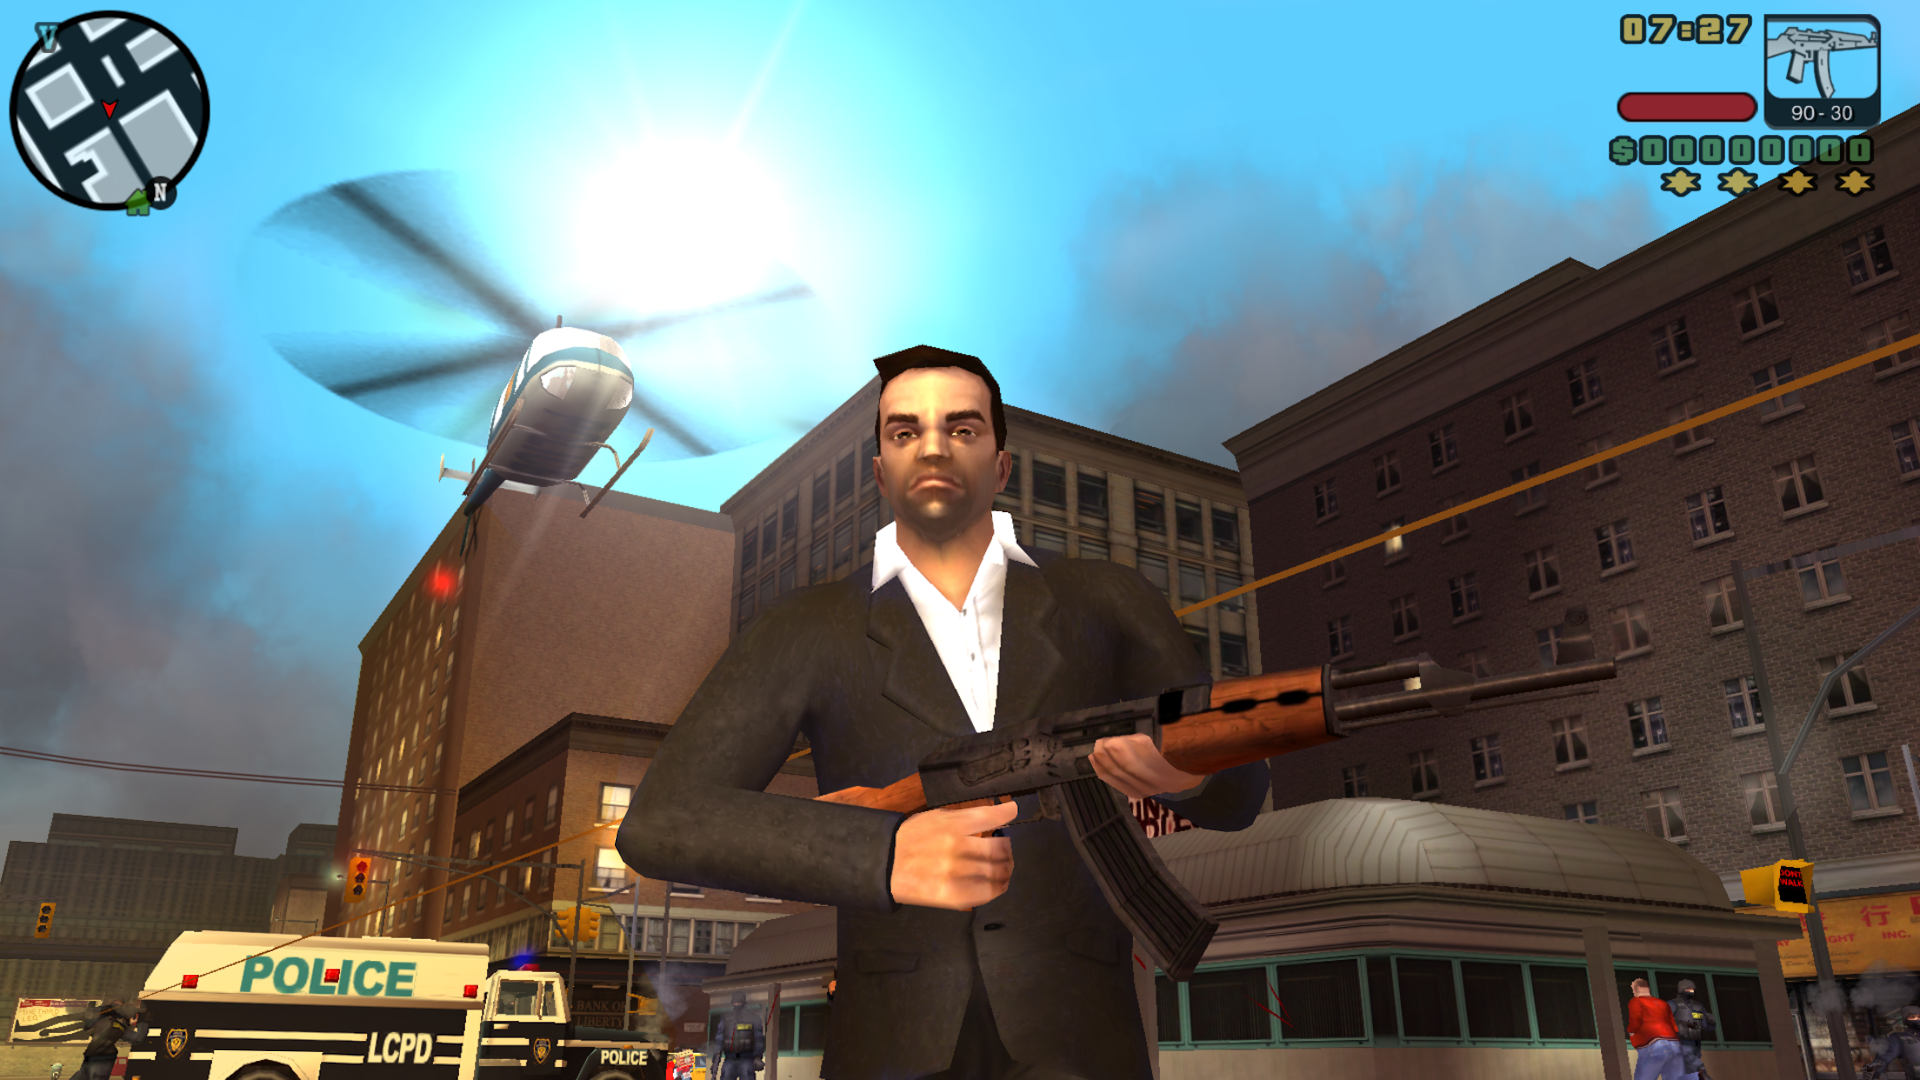 Grand Theft Auto: Liberty City Stories: Amazon.com.br: Amazon Appstore